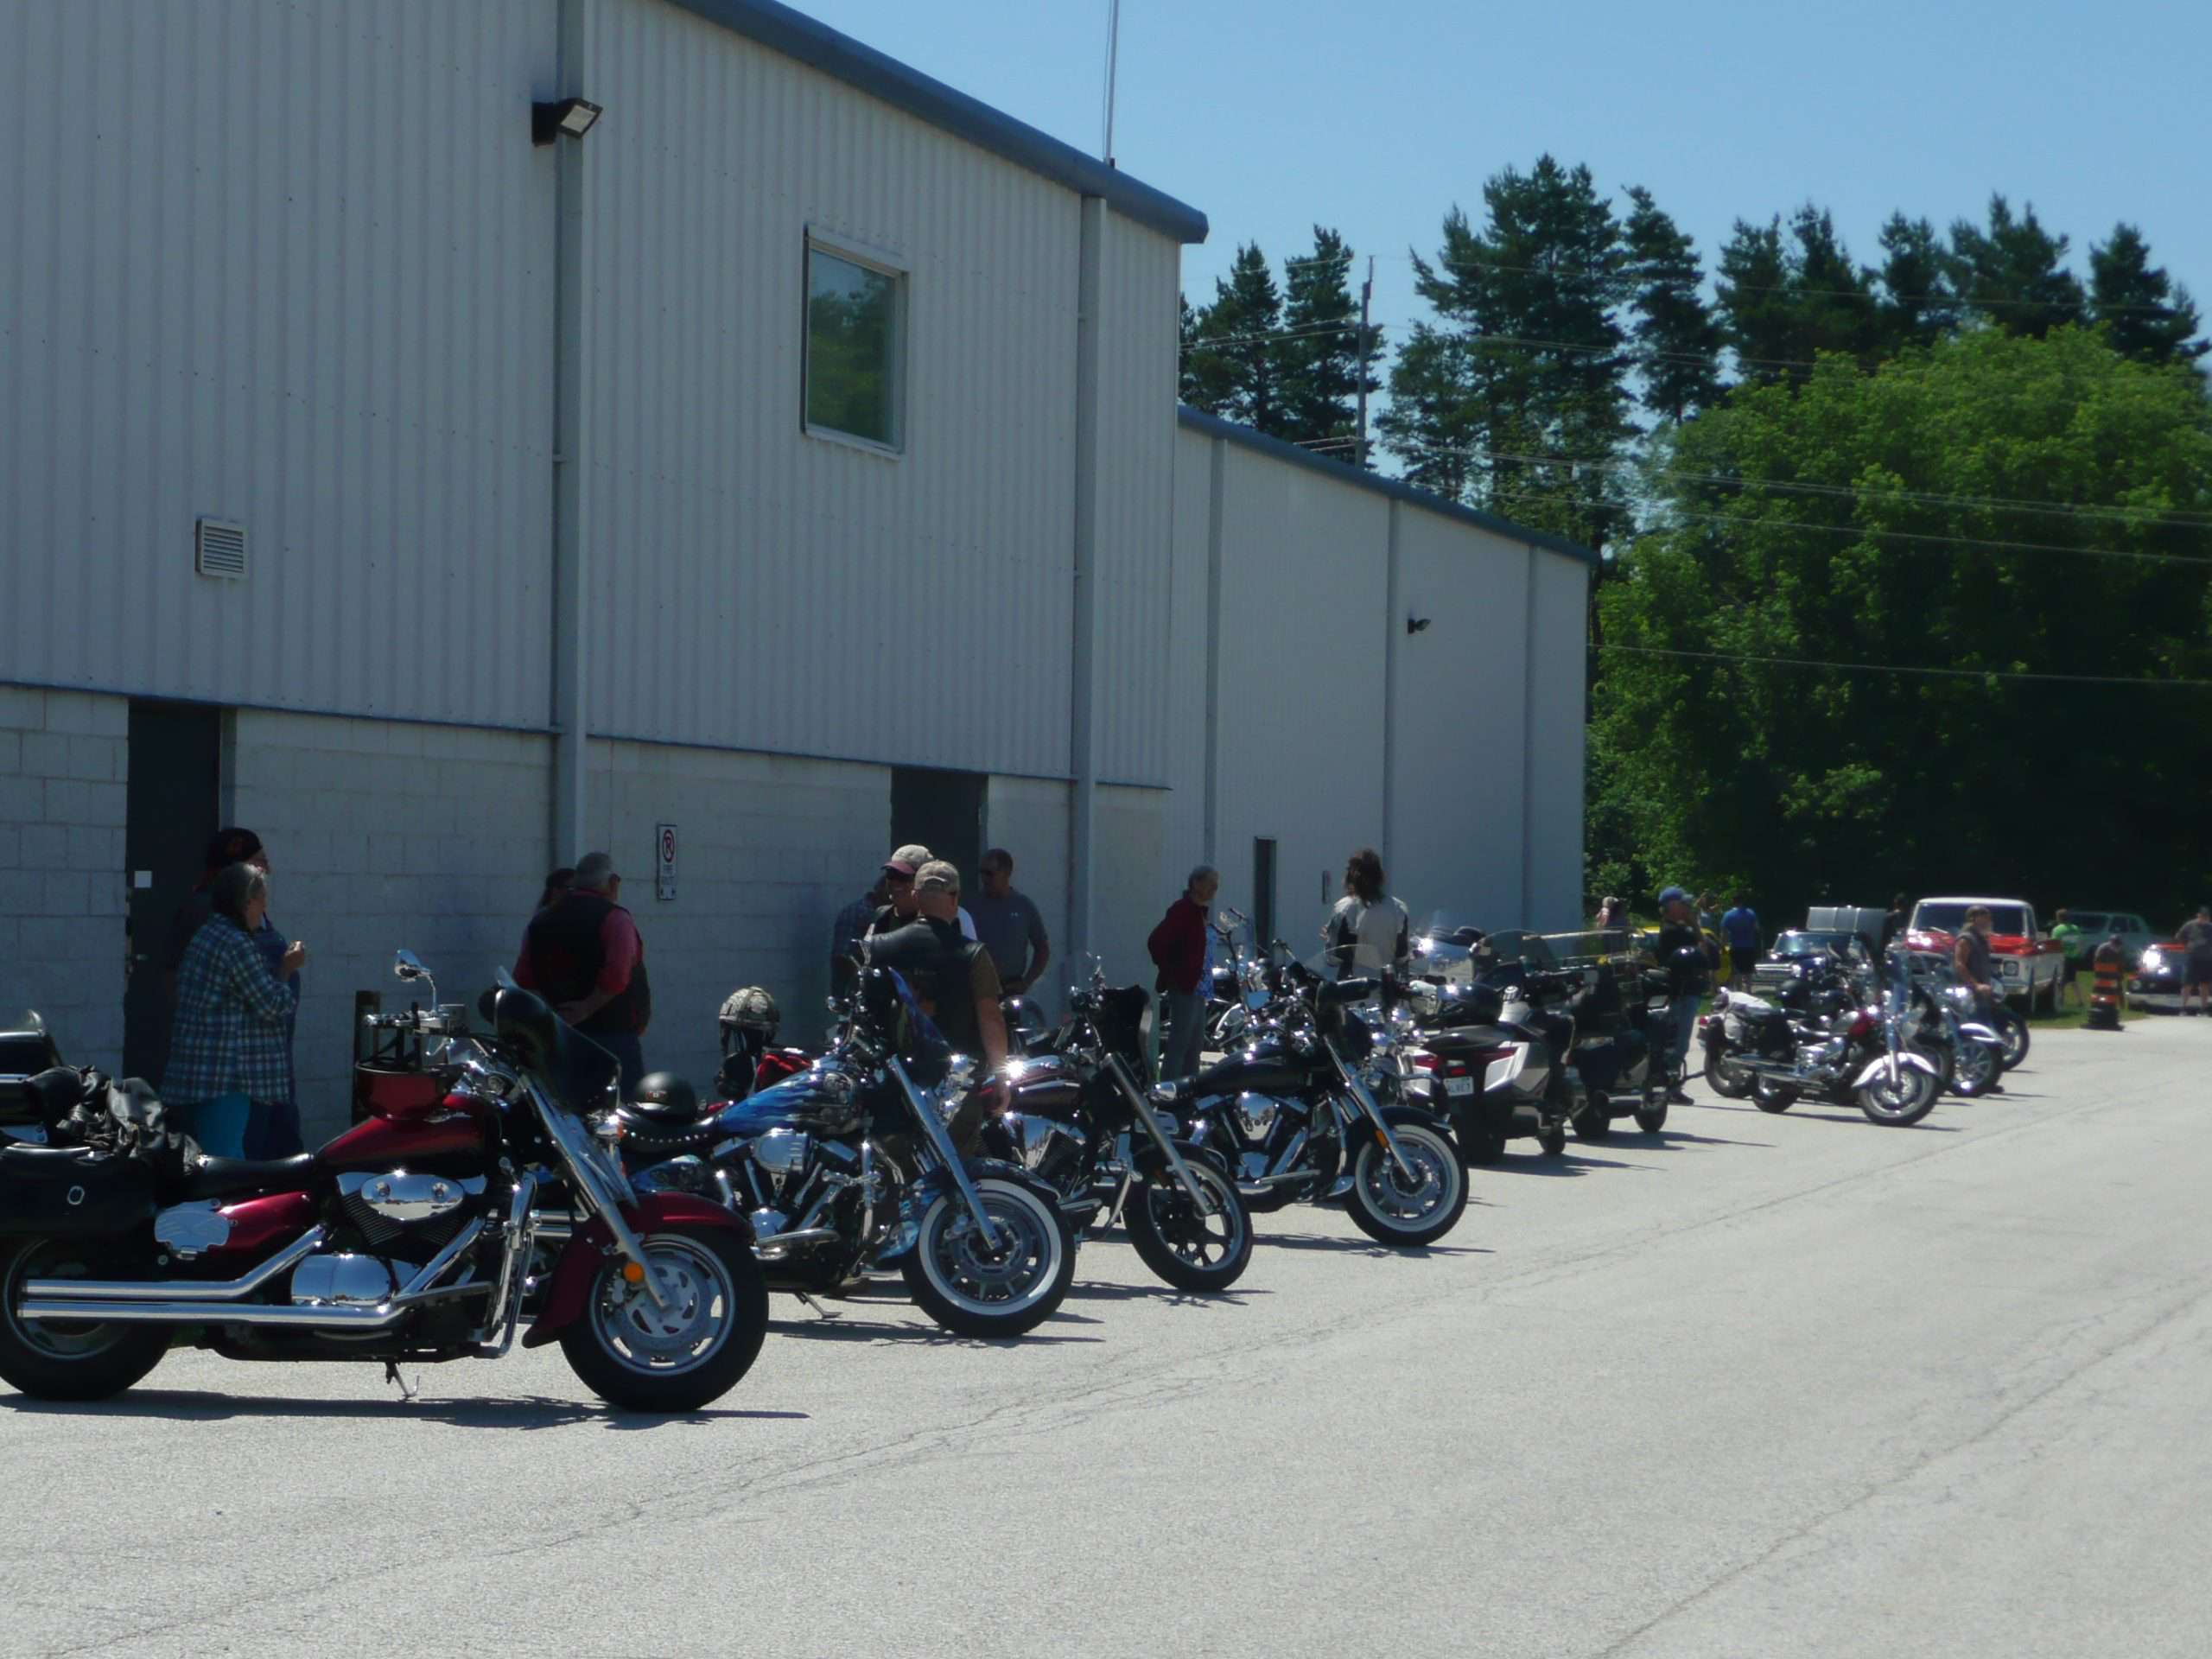 A large contingent of bikers lined up in the parkting lot of The Plex in Port Elgin June 28 for the 'Cruising Grey Bruce' car tour.